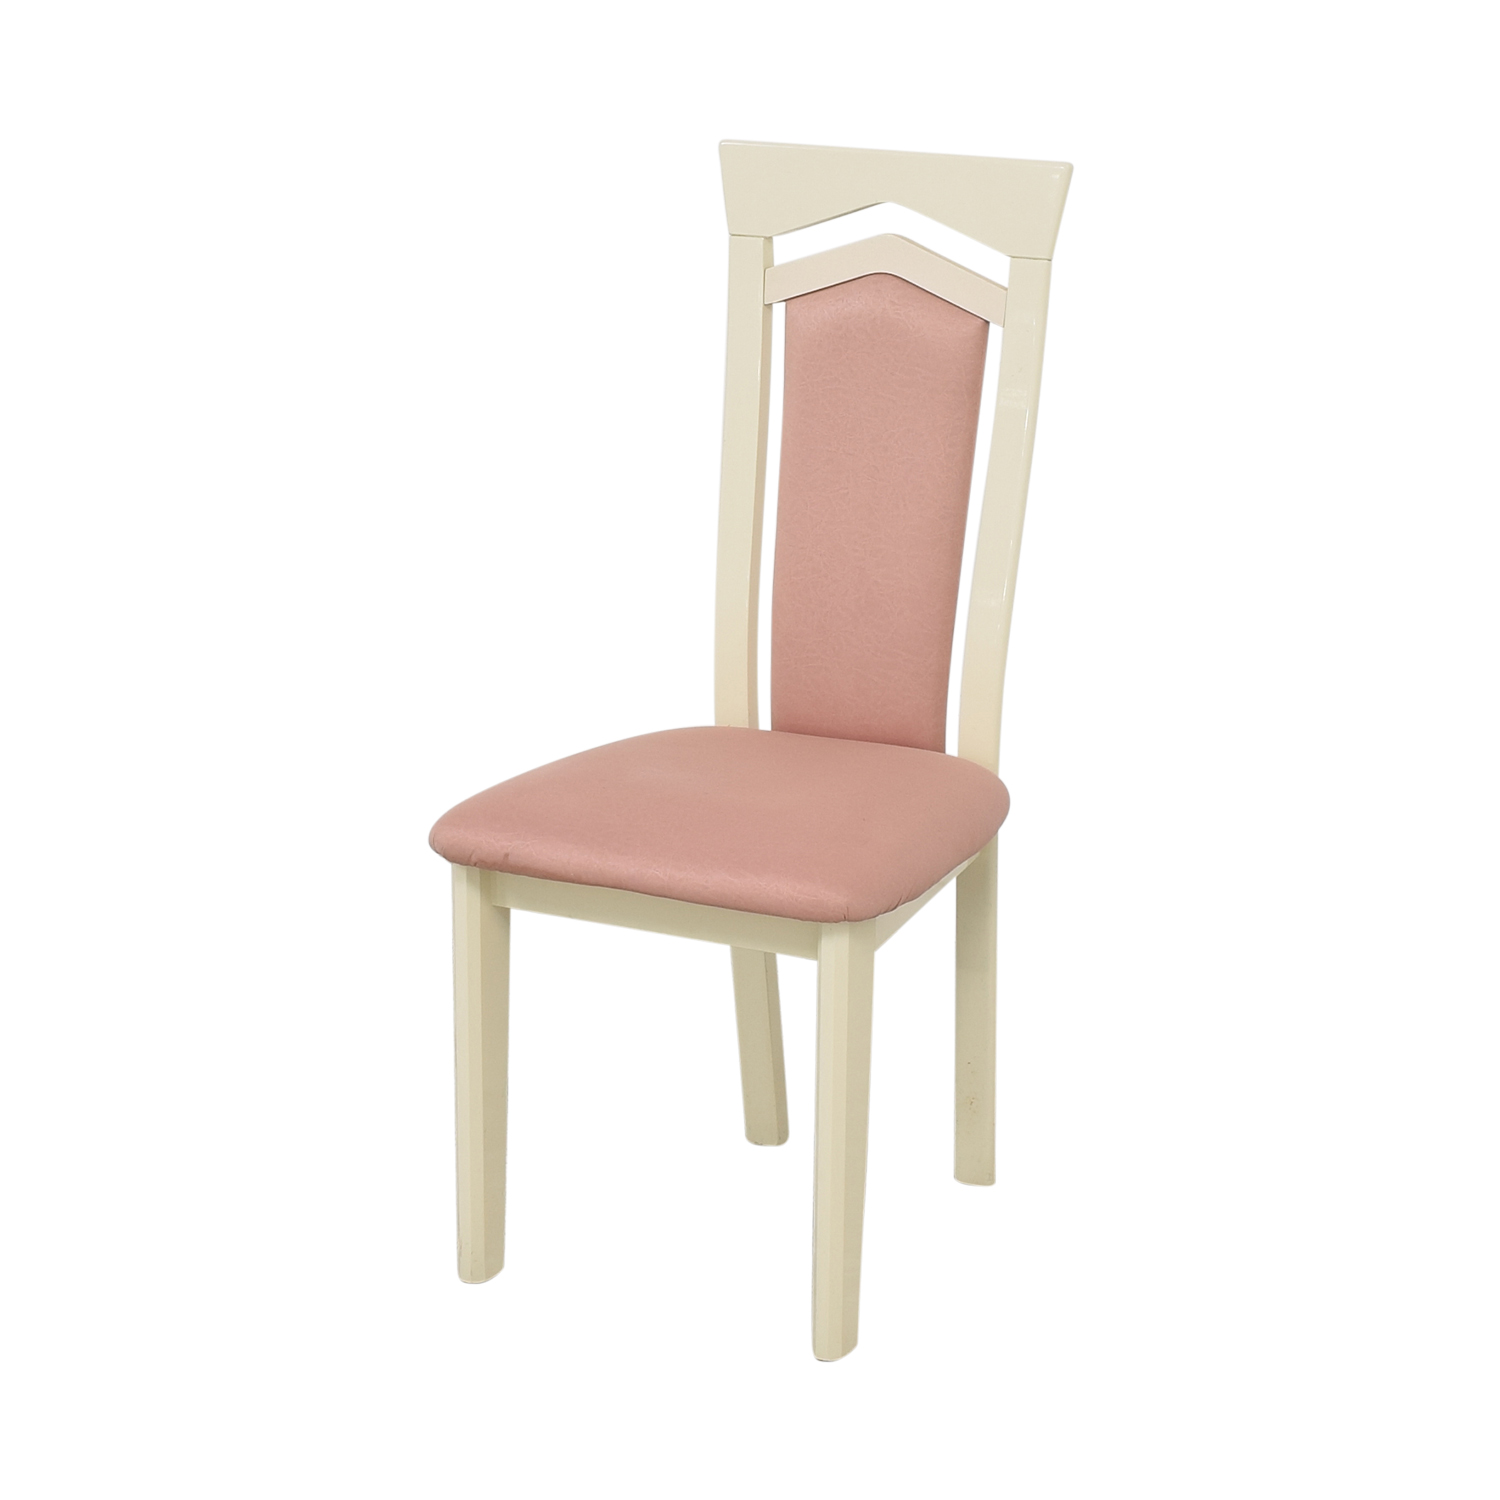 buy Carrier Furniture Carrier Furniture Upholstered Dining Chairs online